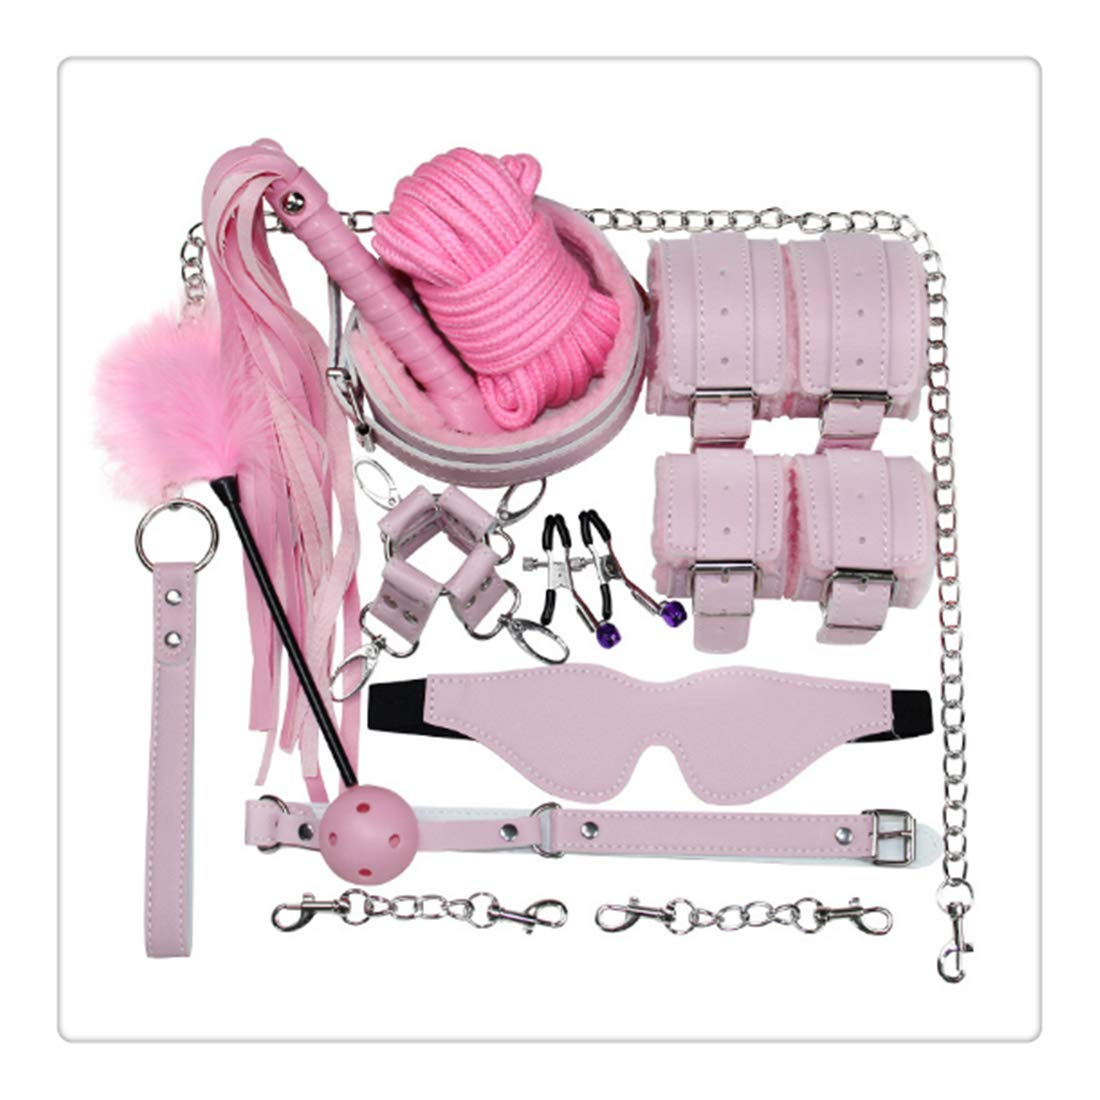 Micrkrowen Handcuff Strap Hair Tail Toys Set - Wrist Ankle Cuffs Kit for Beginners&Pink